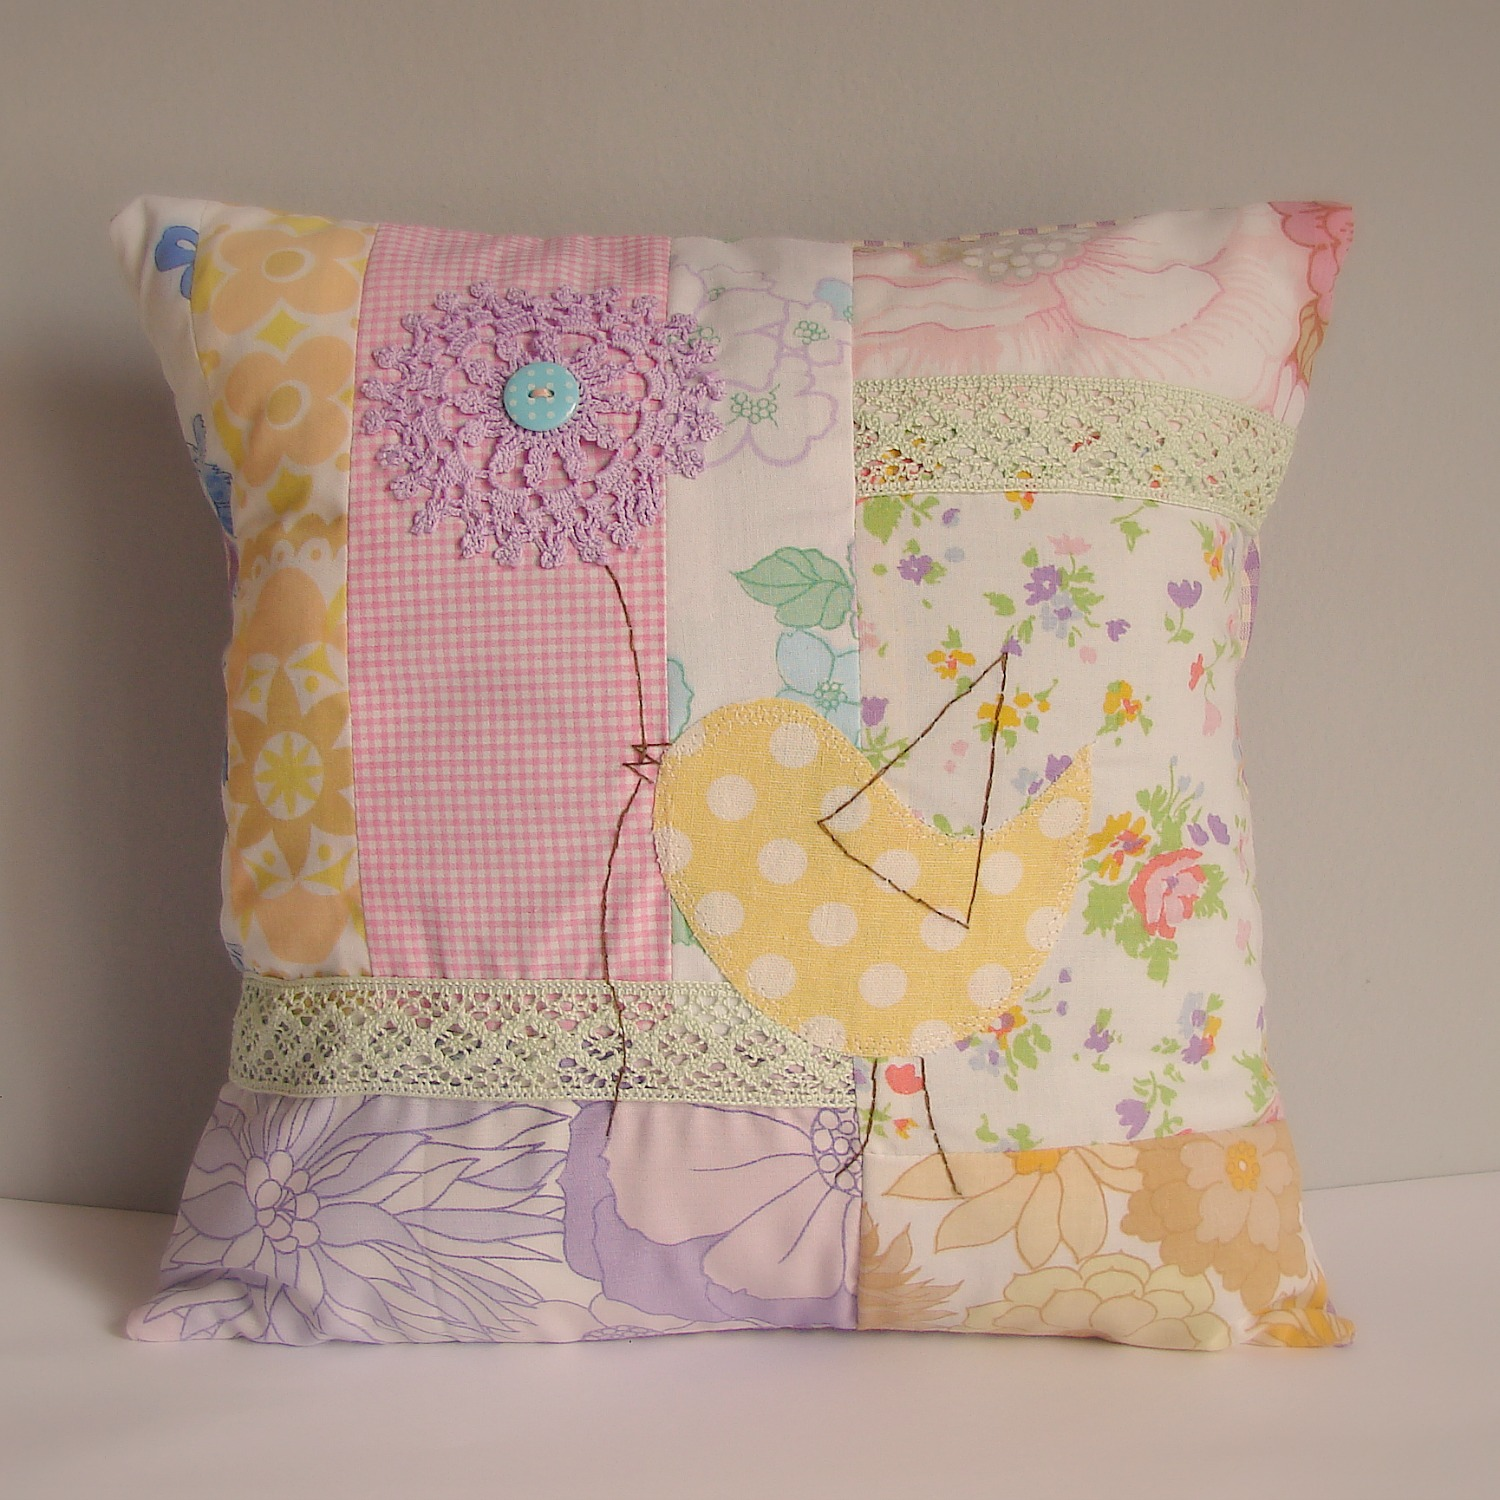 Roxy Creations Vintage Fabric Patchwork Cushions